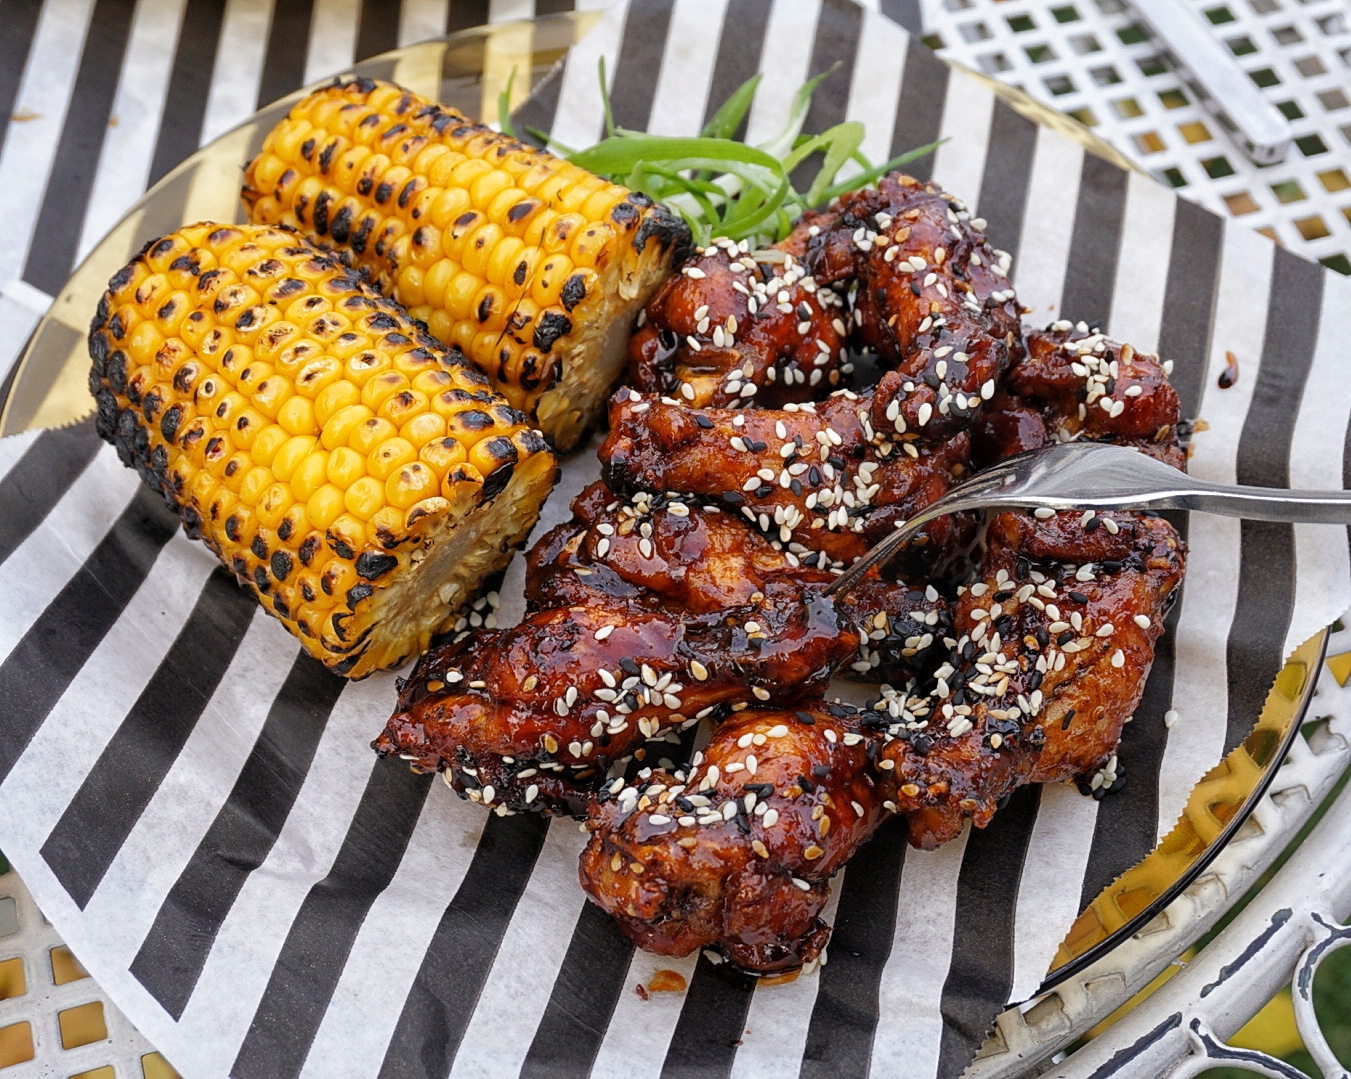 Wings with side of roasted corn with garlic and pepper